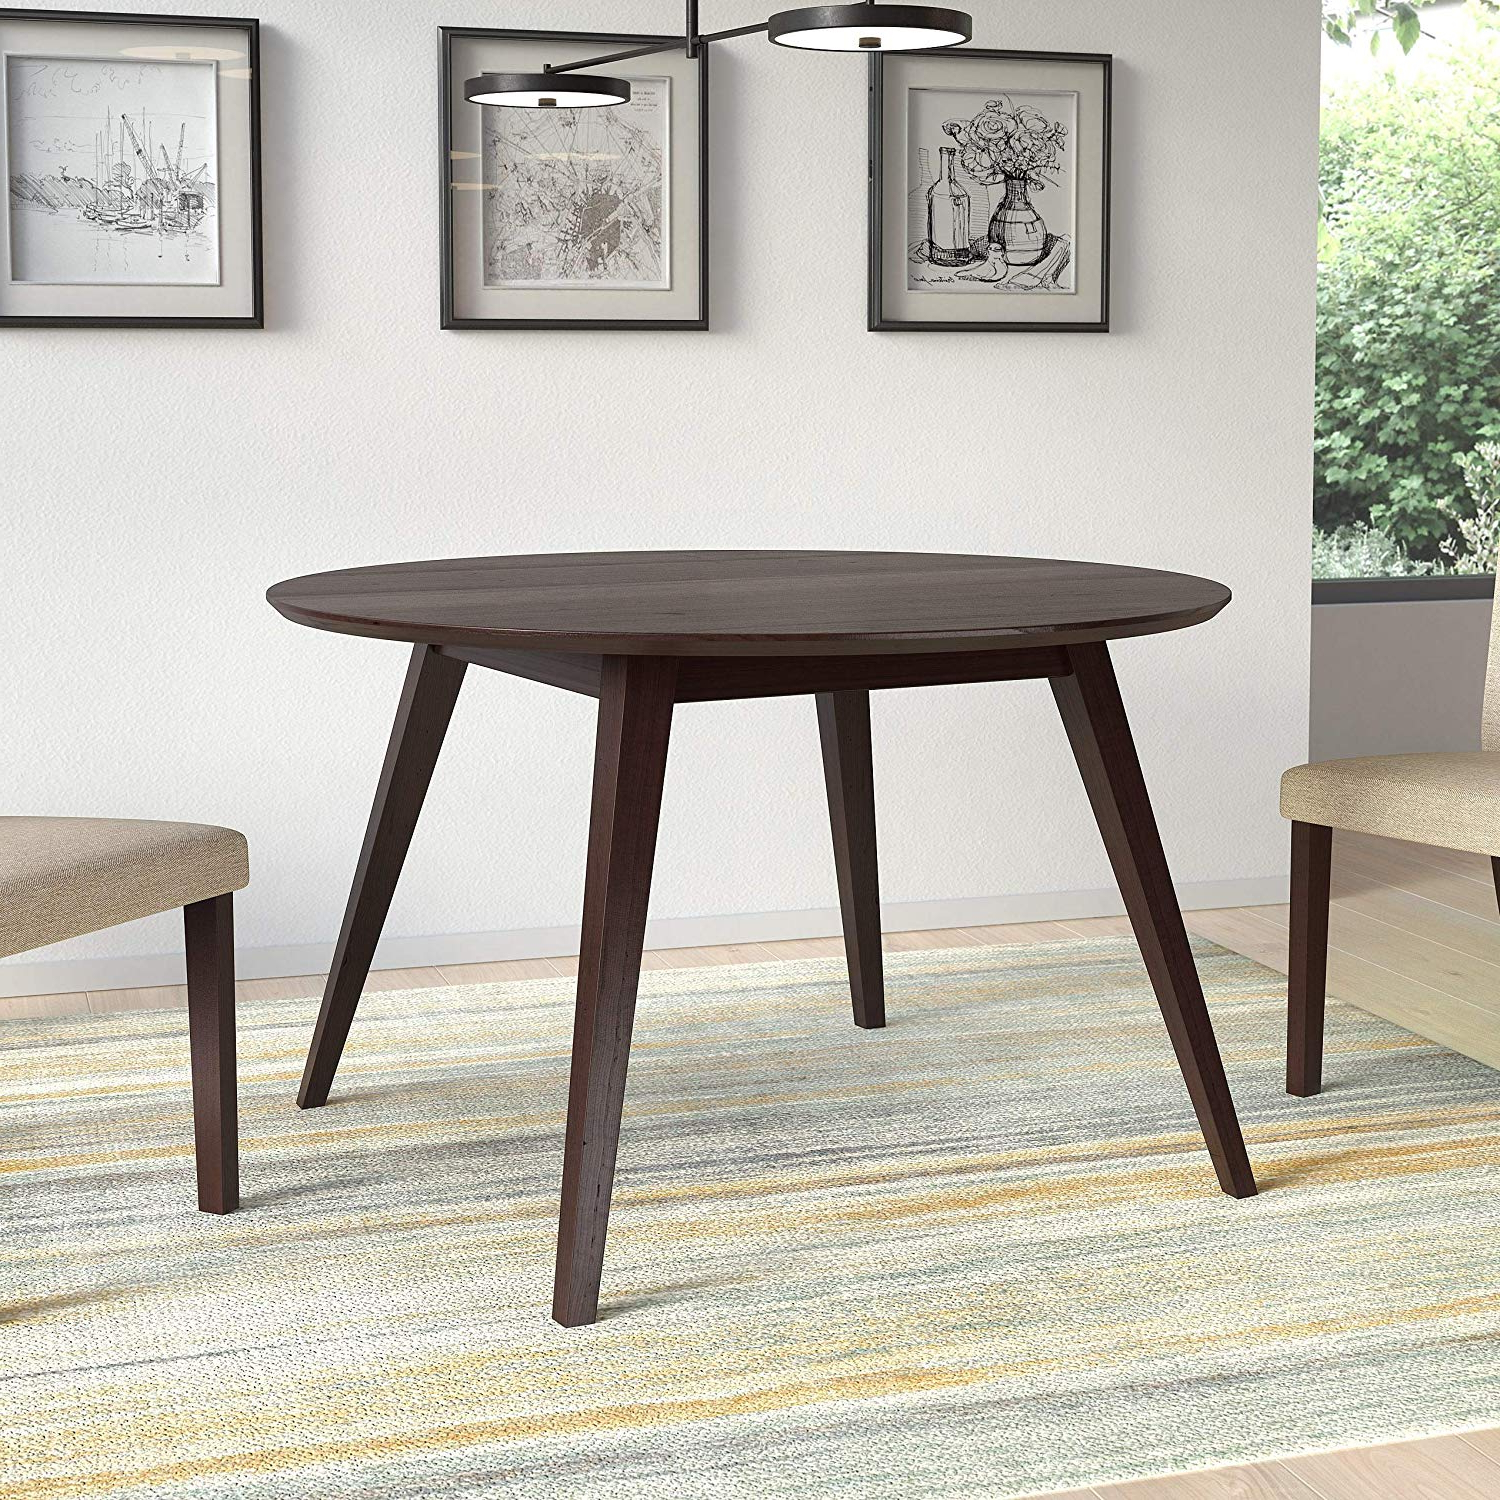 Most Current Atwood Transitional Square Dining Tables Pertaining To Amazon – Corliving Atwood Round Dining Table In (View 15 of 25)